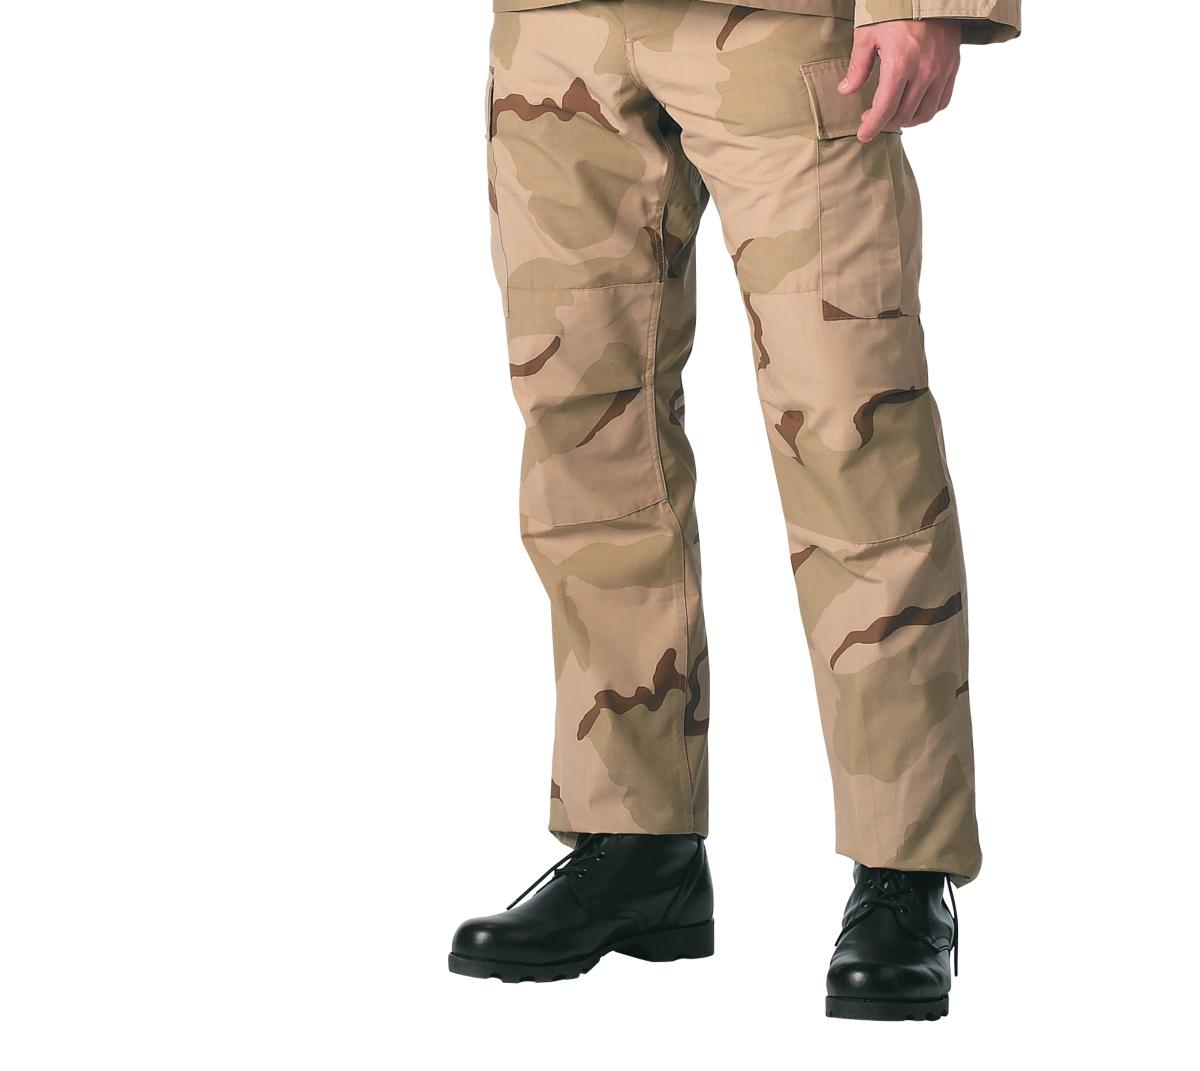 Tri-Color Desert BDU Pants, Military Fatigues by Rothco